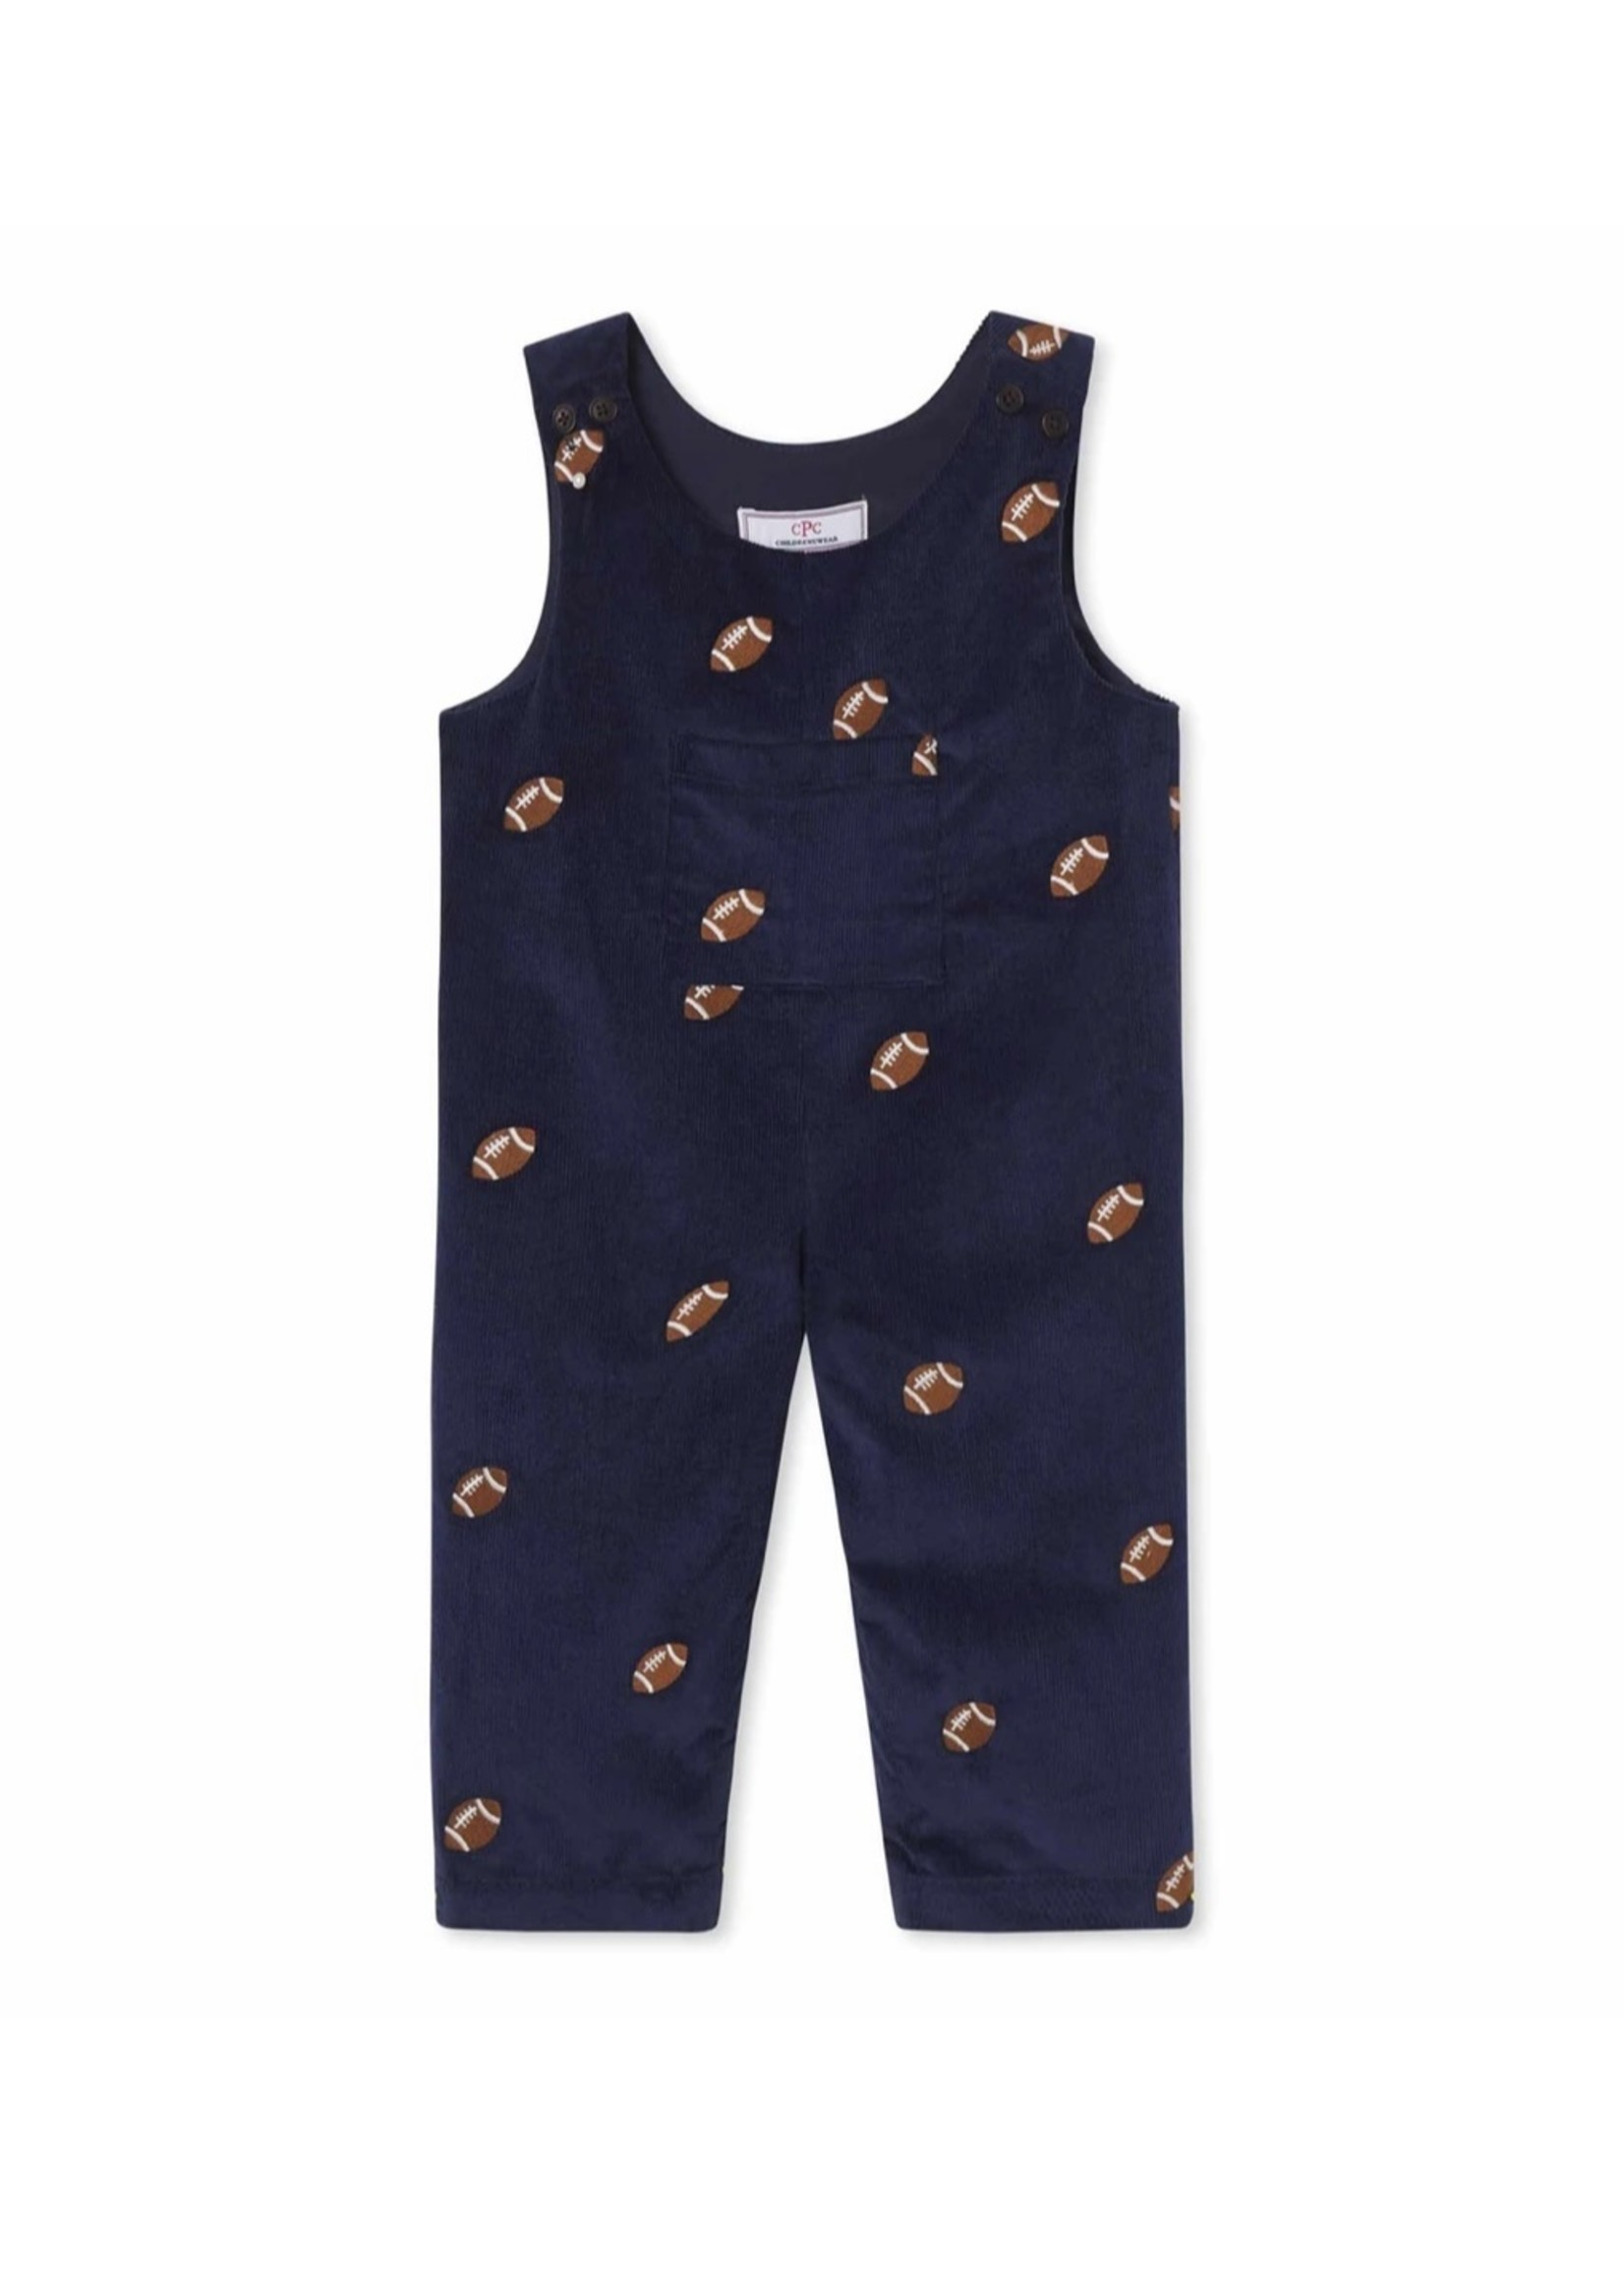 Tucker Overall - Medieval Blue w/ Football Embroidery